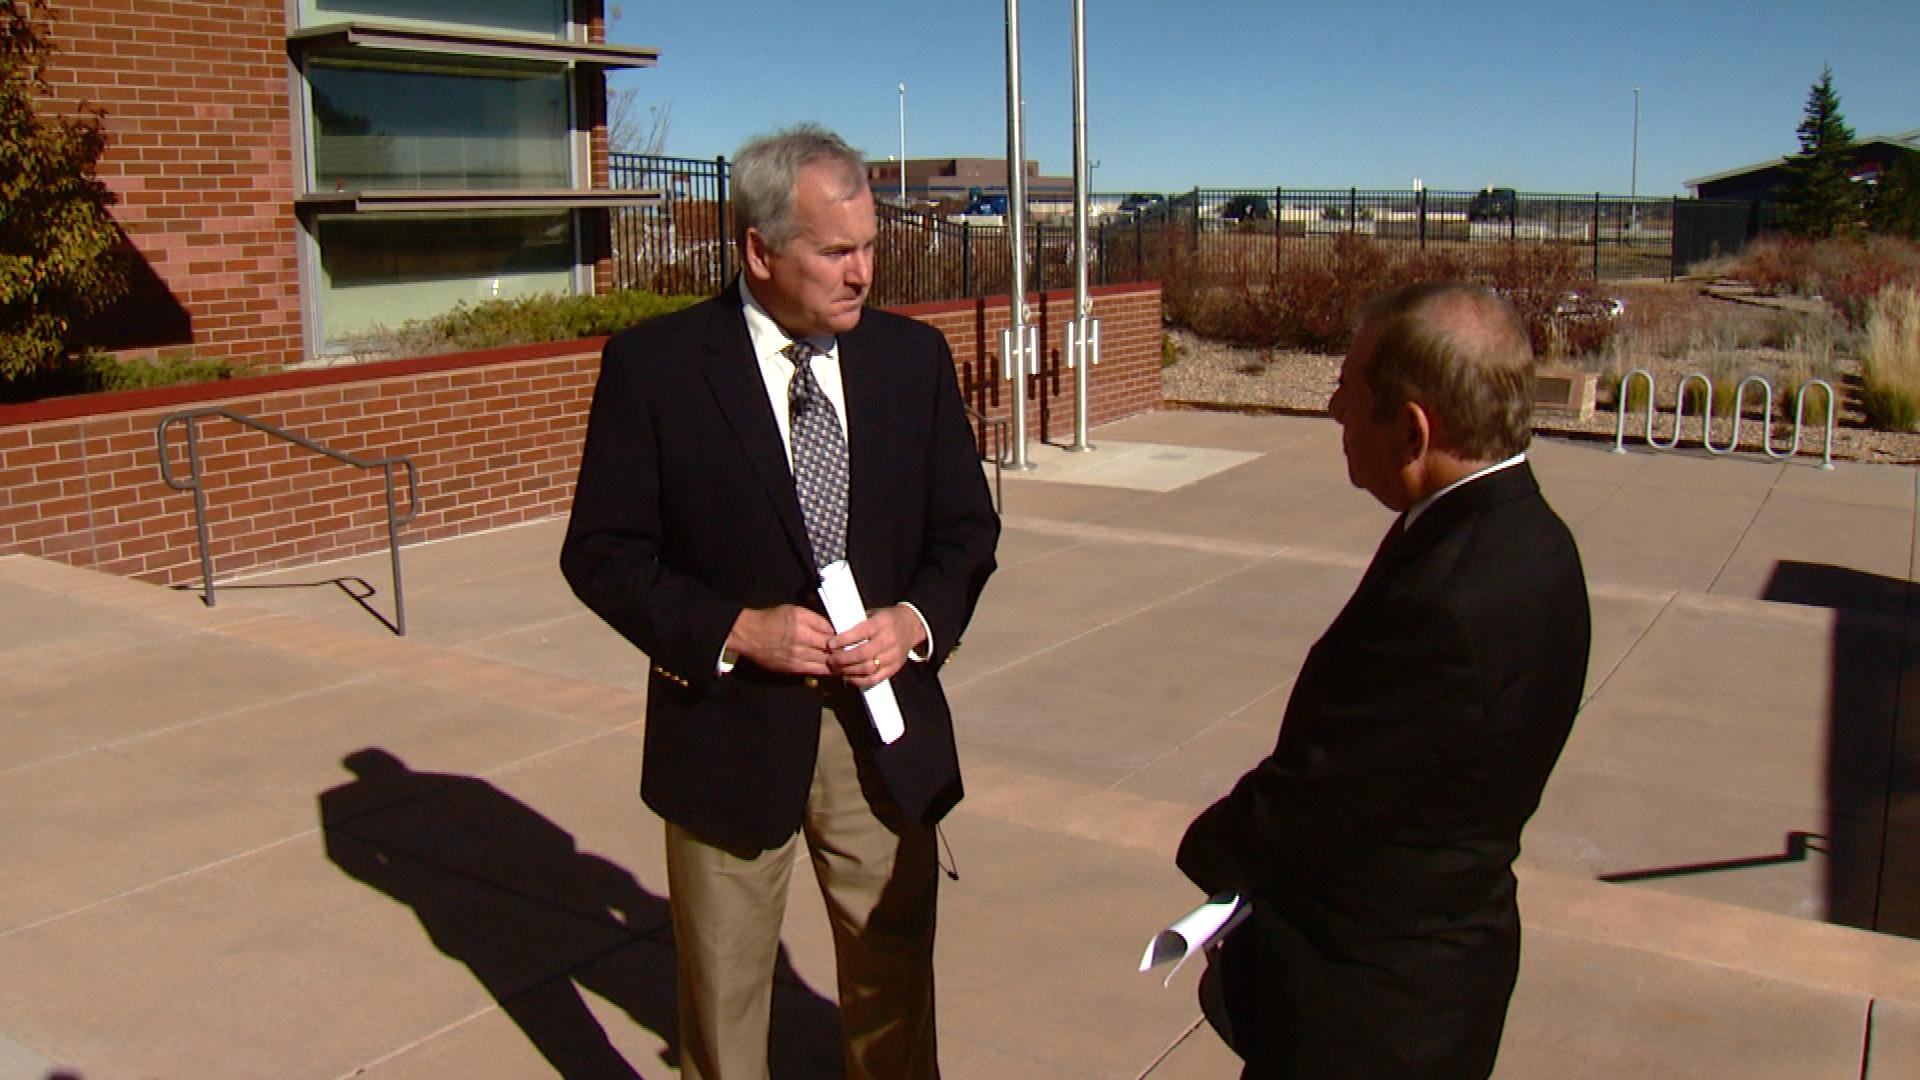 Arapahoe County Sheriff David Walcher is interviewed by CBS4's Rick Sallinger (credit: CBS)